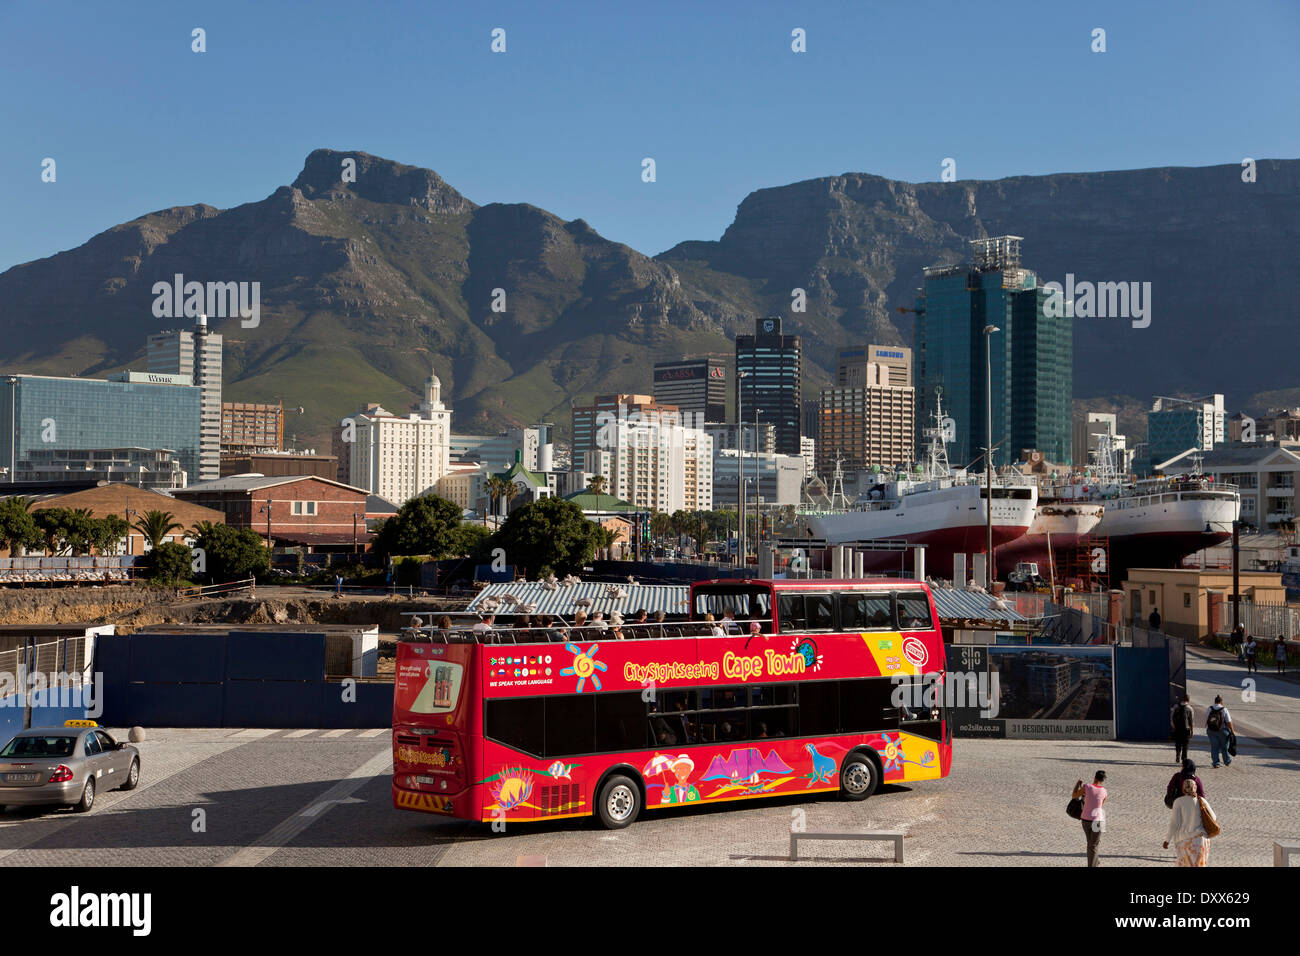 Red bus of City Sightseeing Cape Town and the skyline of Cape Town, Western Cape, South Africa - Stock Image